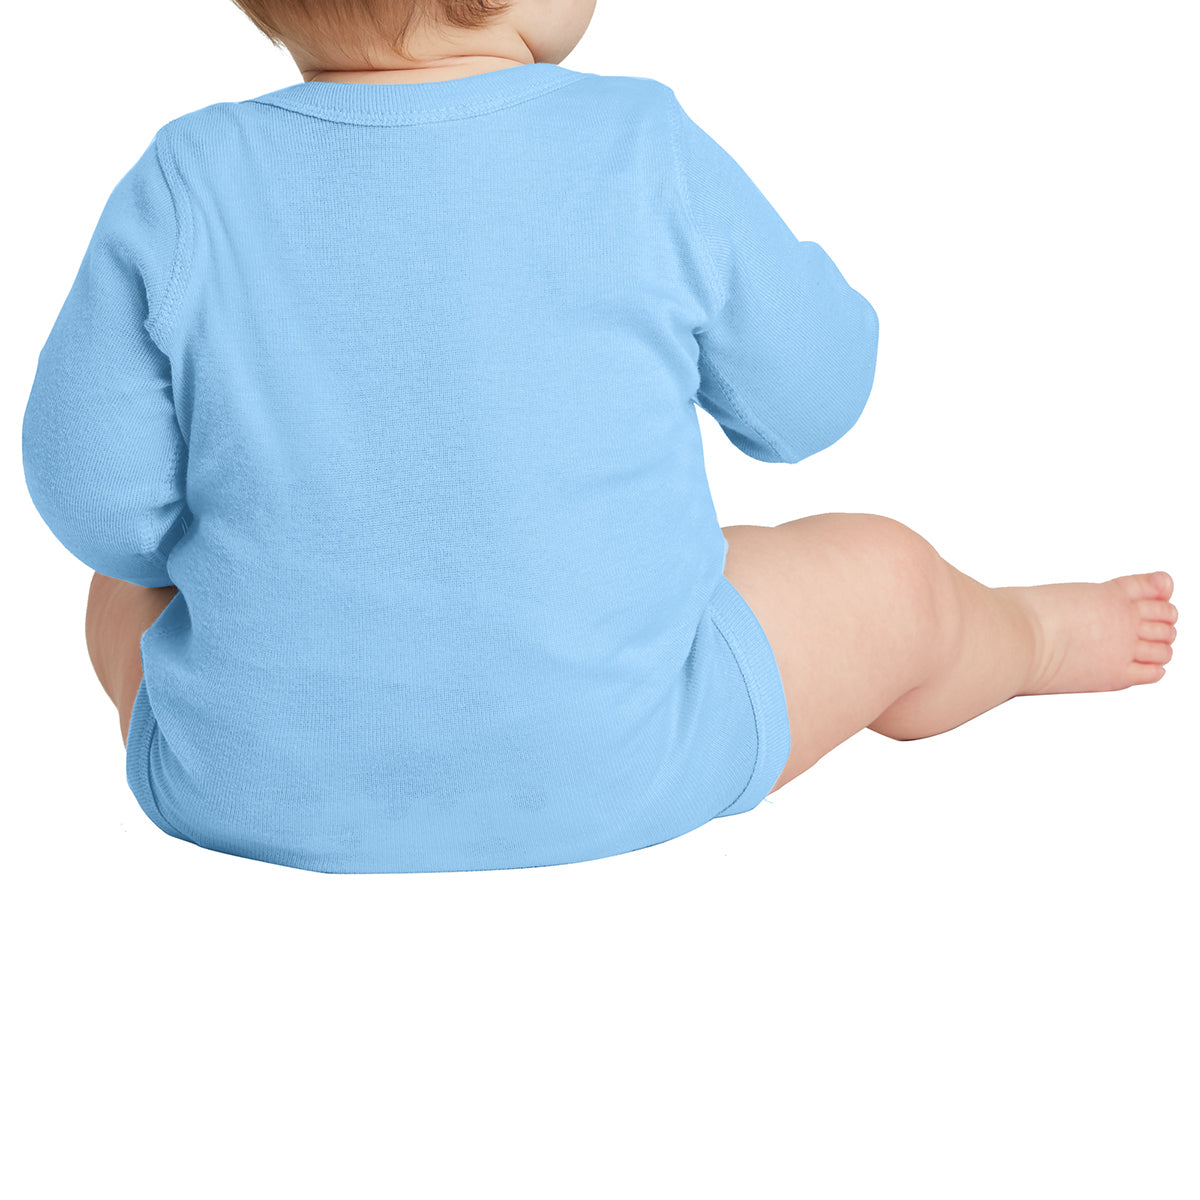 Infant Long Sleeve Baby Rib Bodysuit - Light Blue